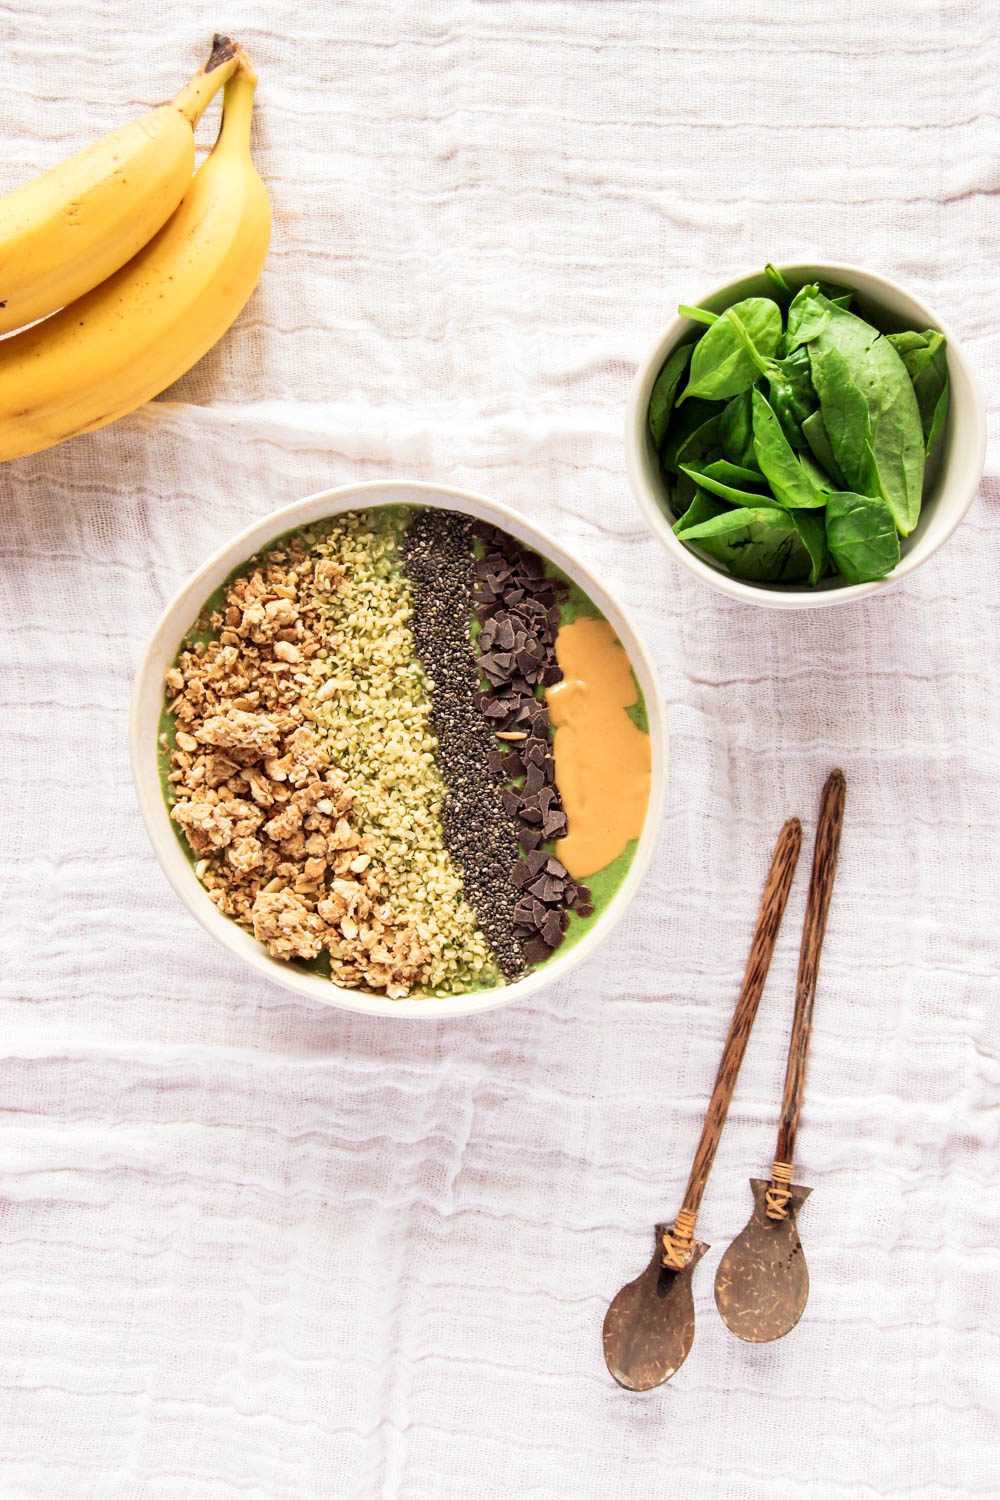 Green Smoothie Bowl decorated with wooden spoons and banana as well as spinach on the side